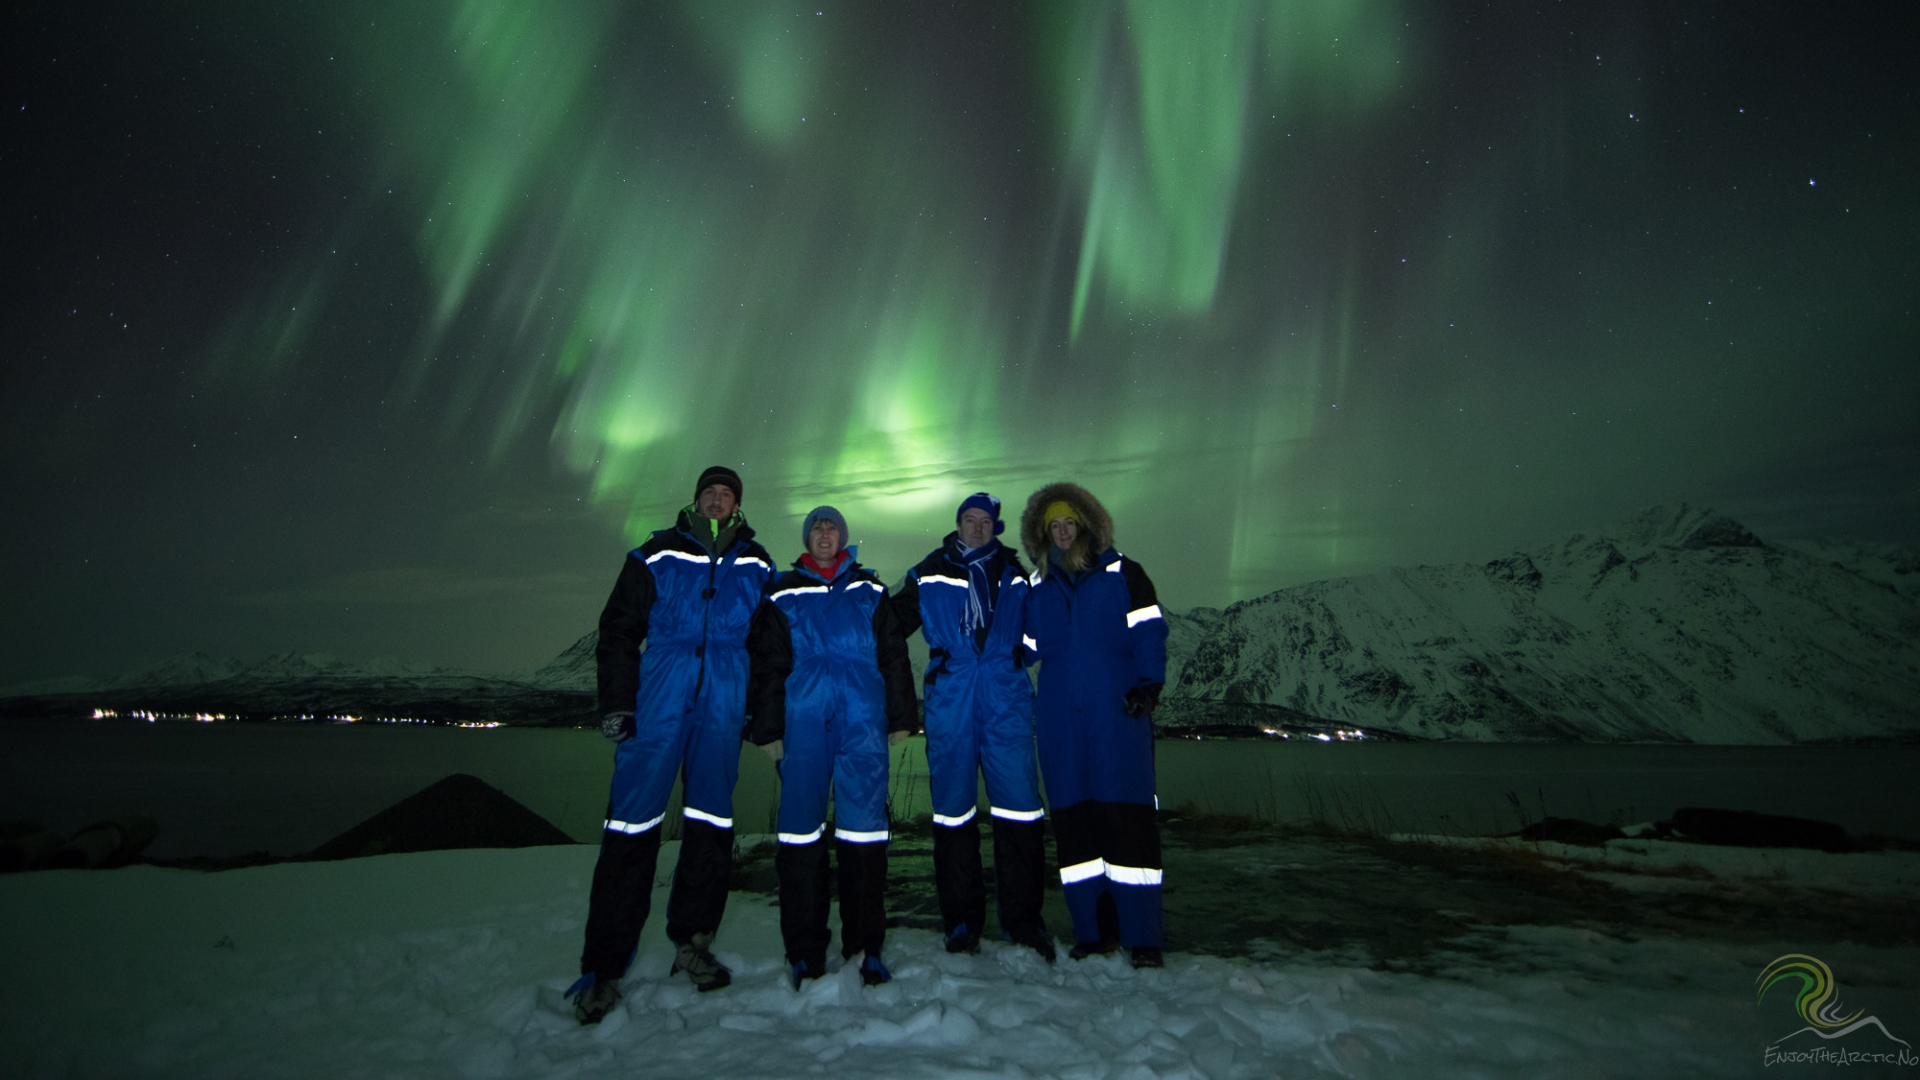 Friends under the Northern Lights